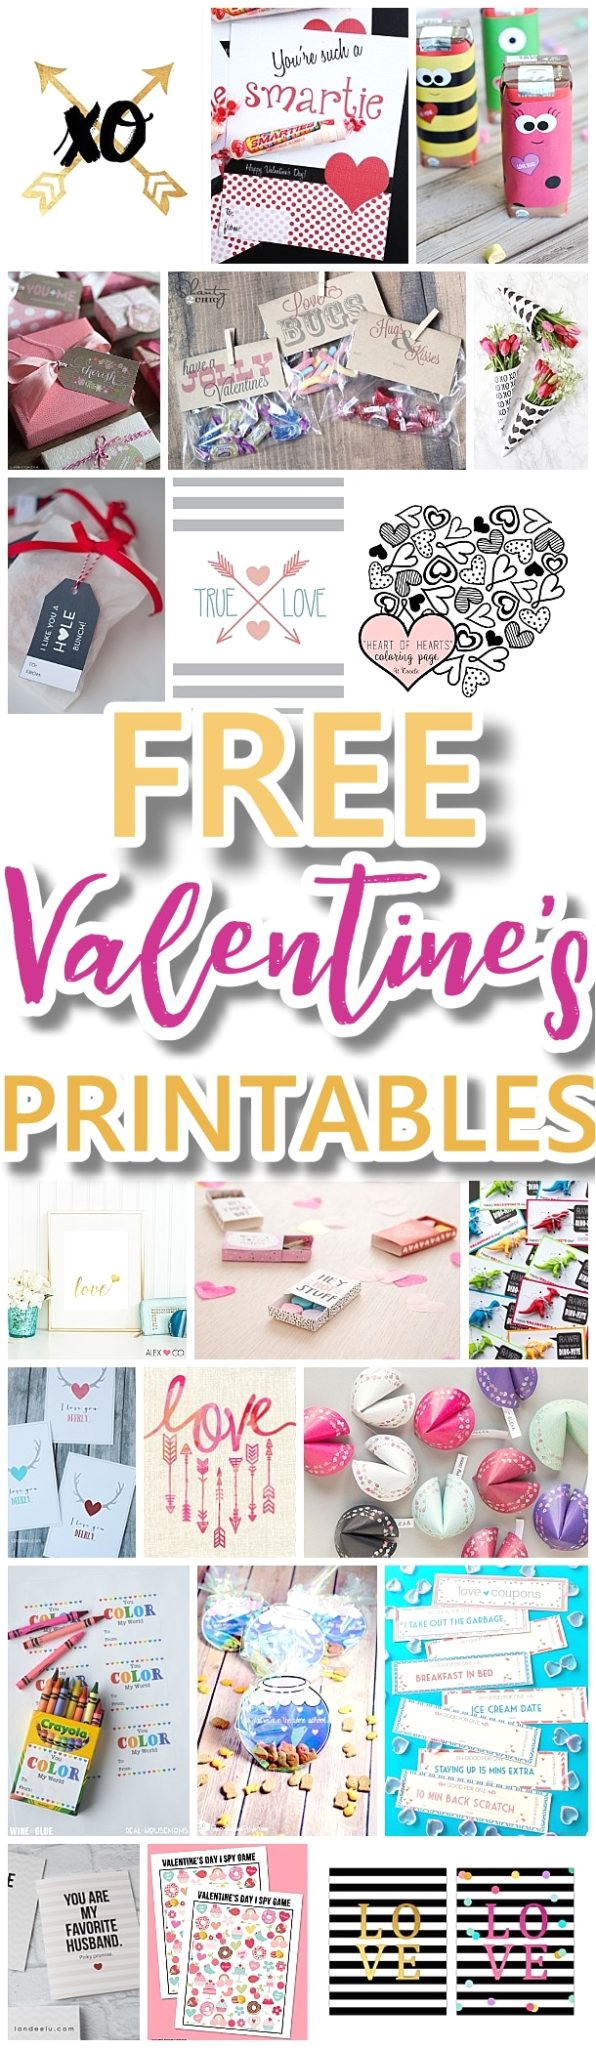 the best valentines day free printables kids classmate cards valentine party decorations hearts love red and pink themed artwork home decor holiday greeting cards for sweethearts jpg